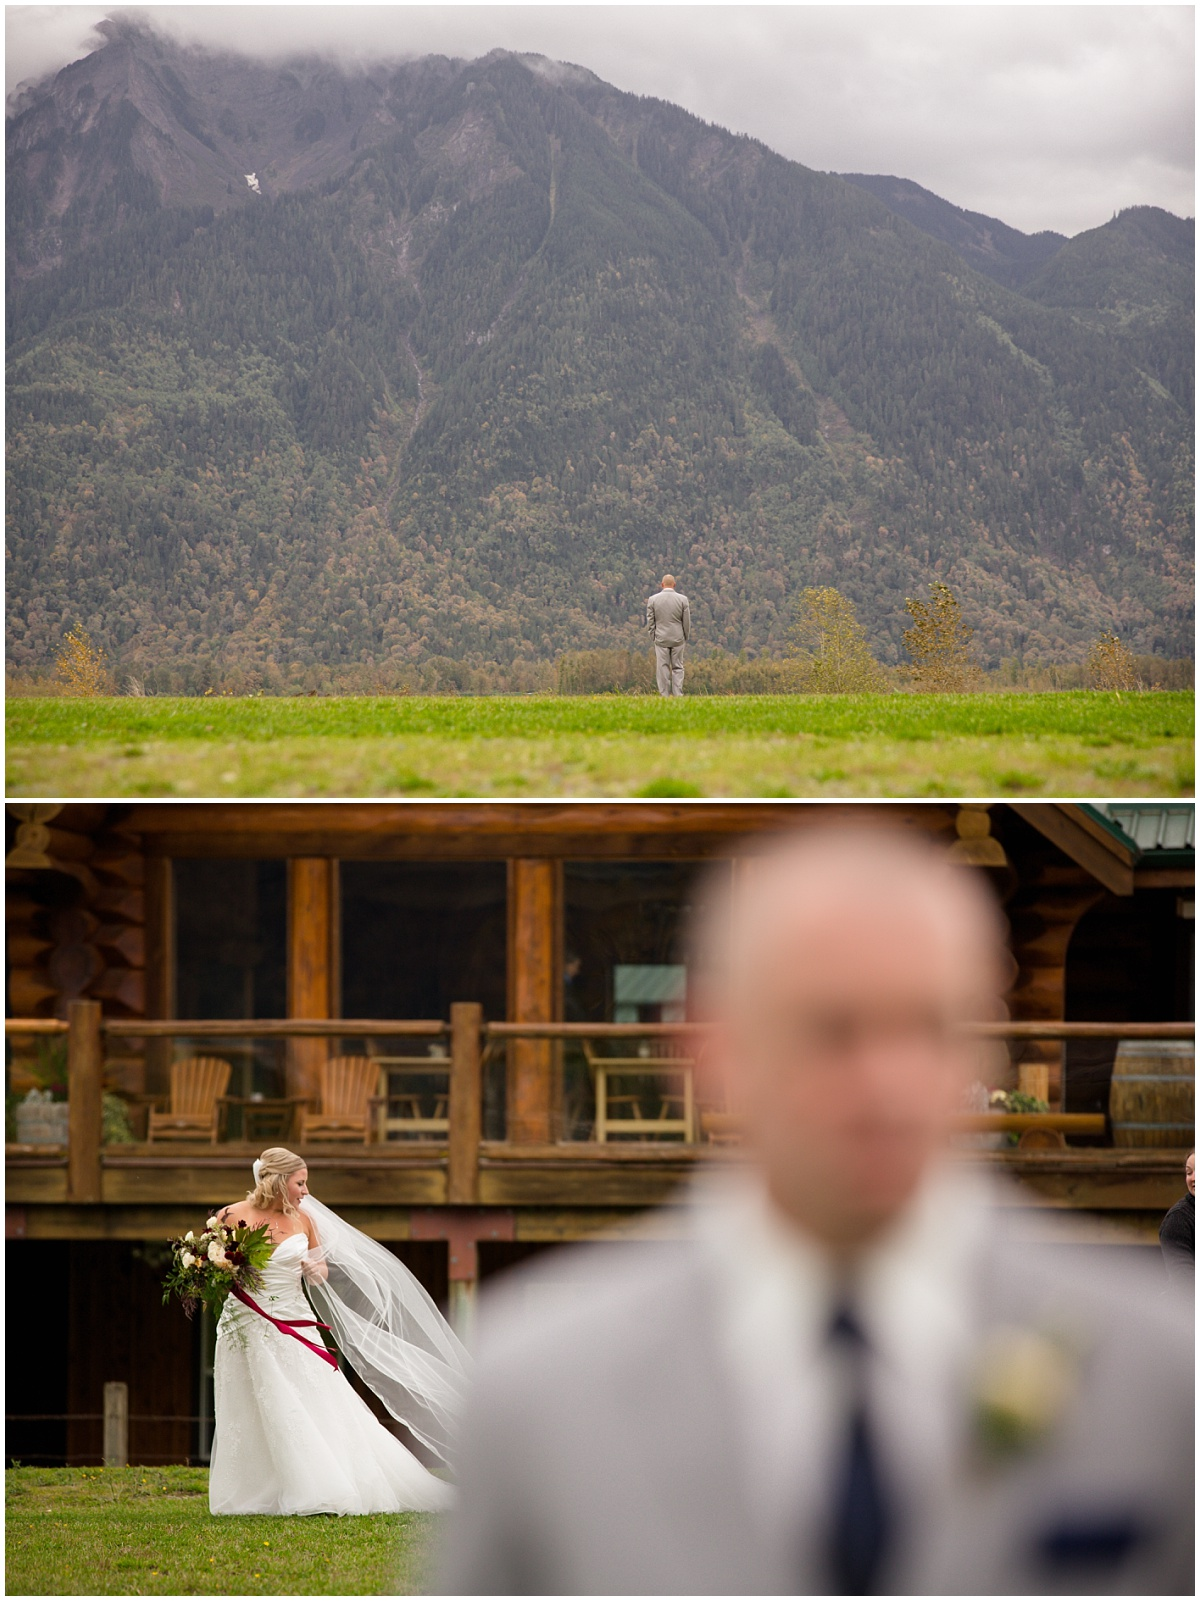 Amazing Day Photography - Fraser River Lodge Wedding - Fall Wedding - Fraser Valley Wedding Photographer - Langley Wedding Photographer (12).jpg